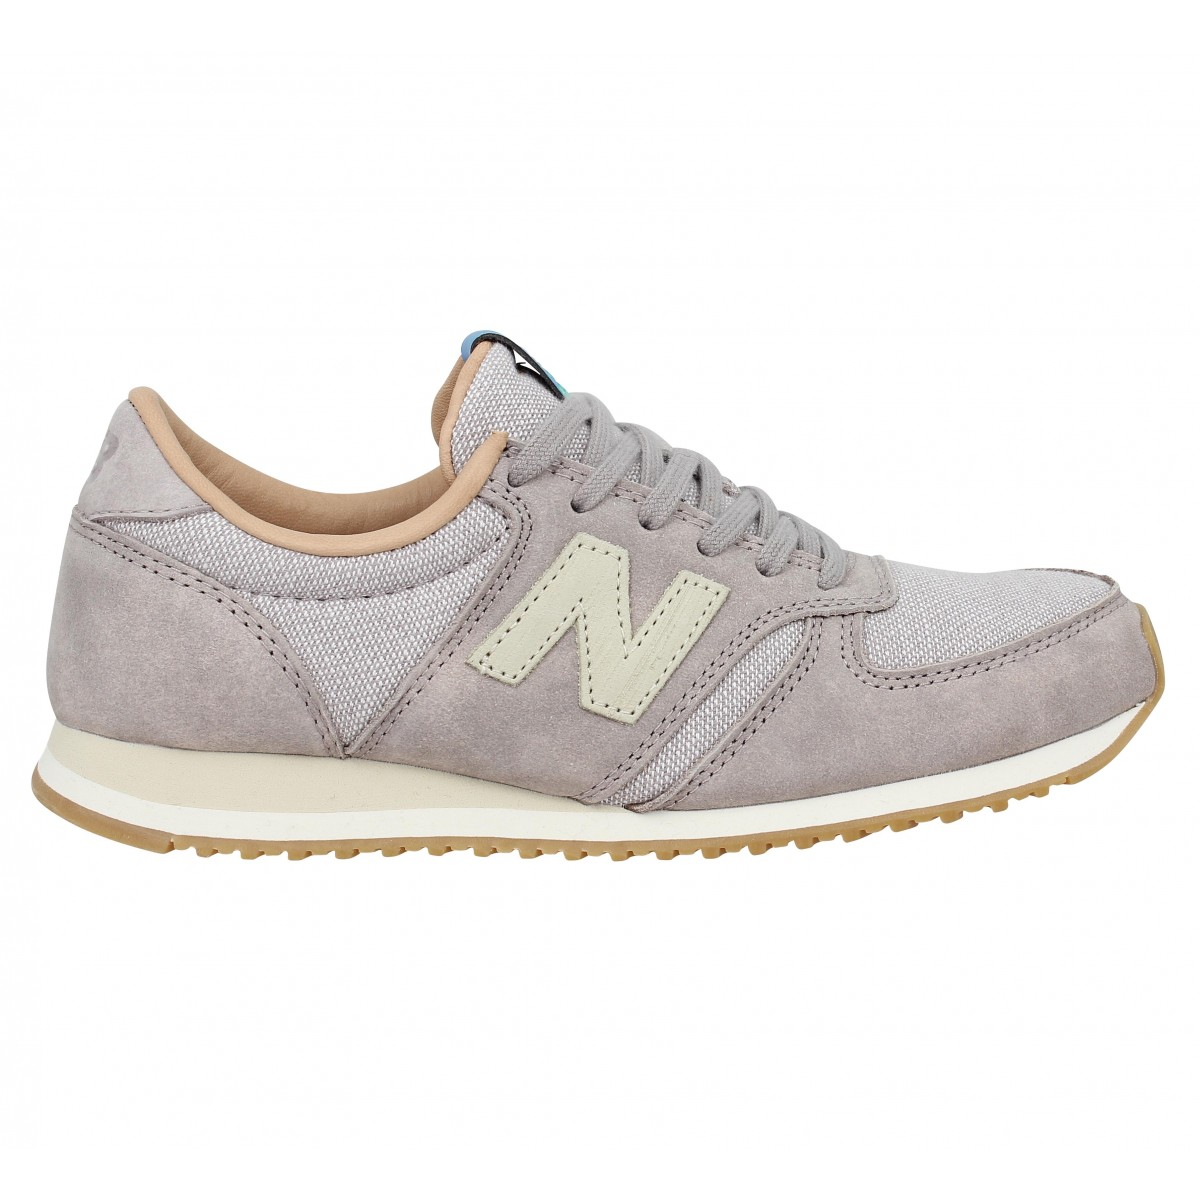 New Balance 420 Grise Femme Taille 37